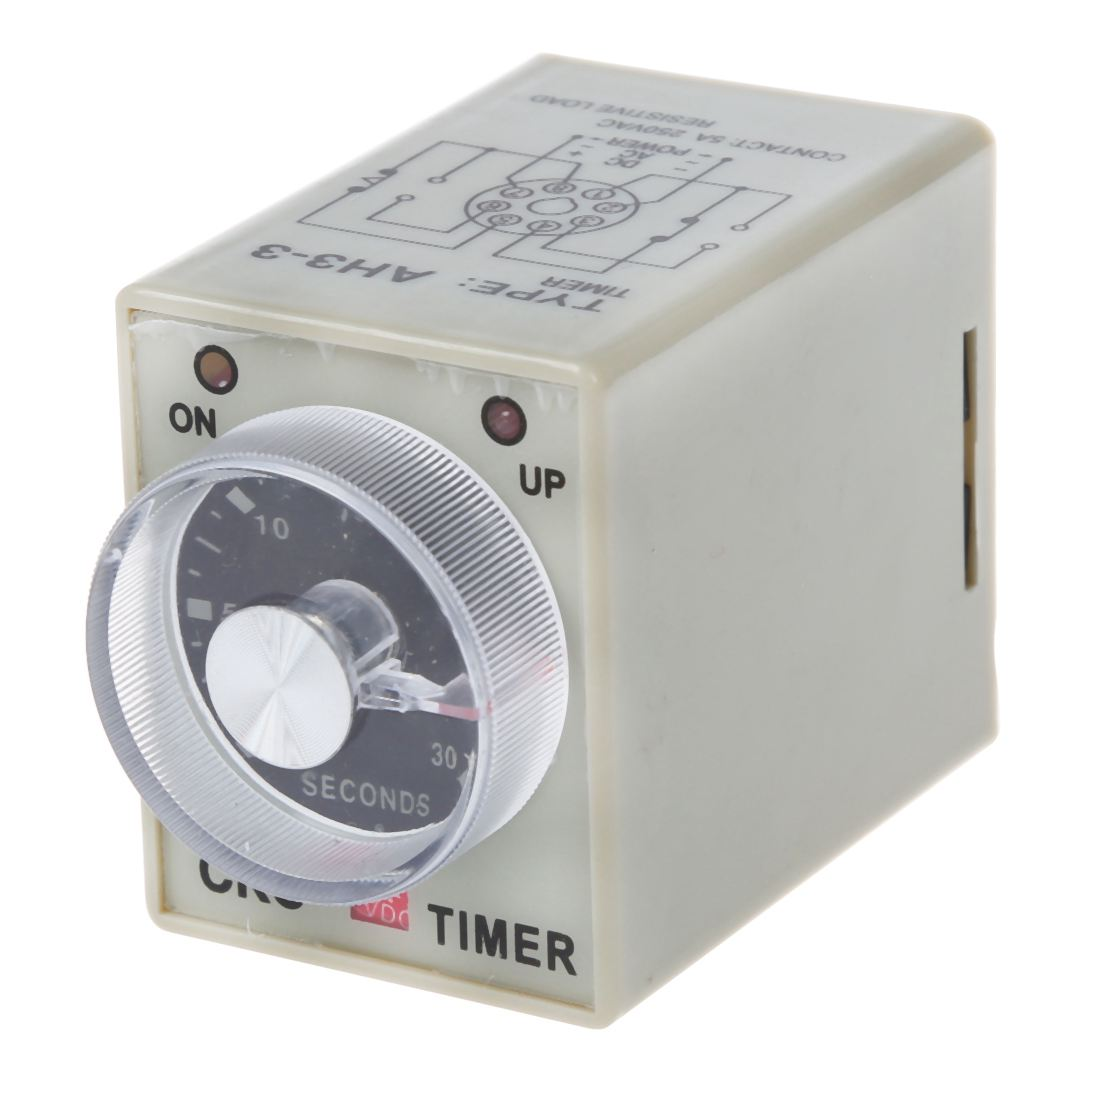 DC 12V 0-30 Seconds 30s Electric Delay Timer Timing Relay DPDT 8P w Base zys48 s dh48s s ac 220v repeat cycle dpdt time delay relay timer counter with socket base 220vac